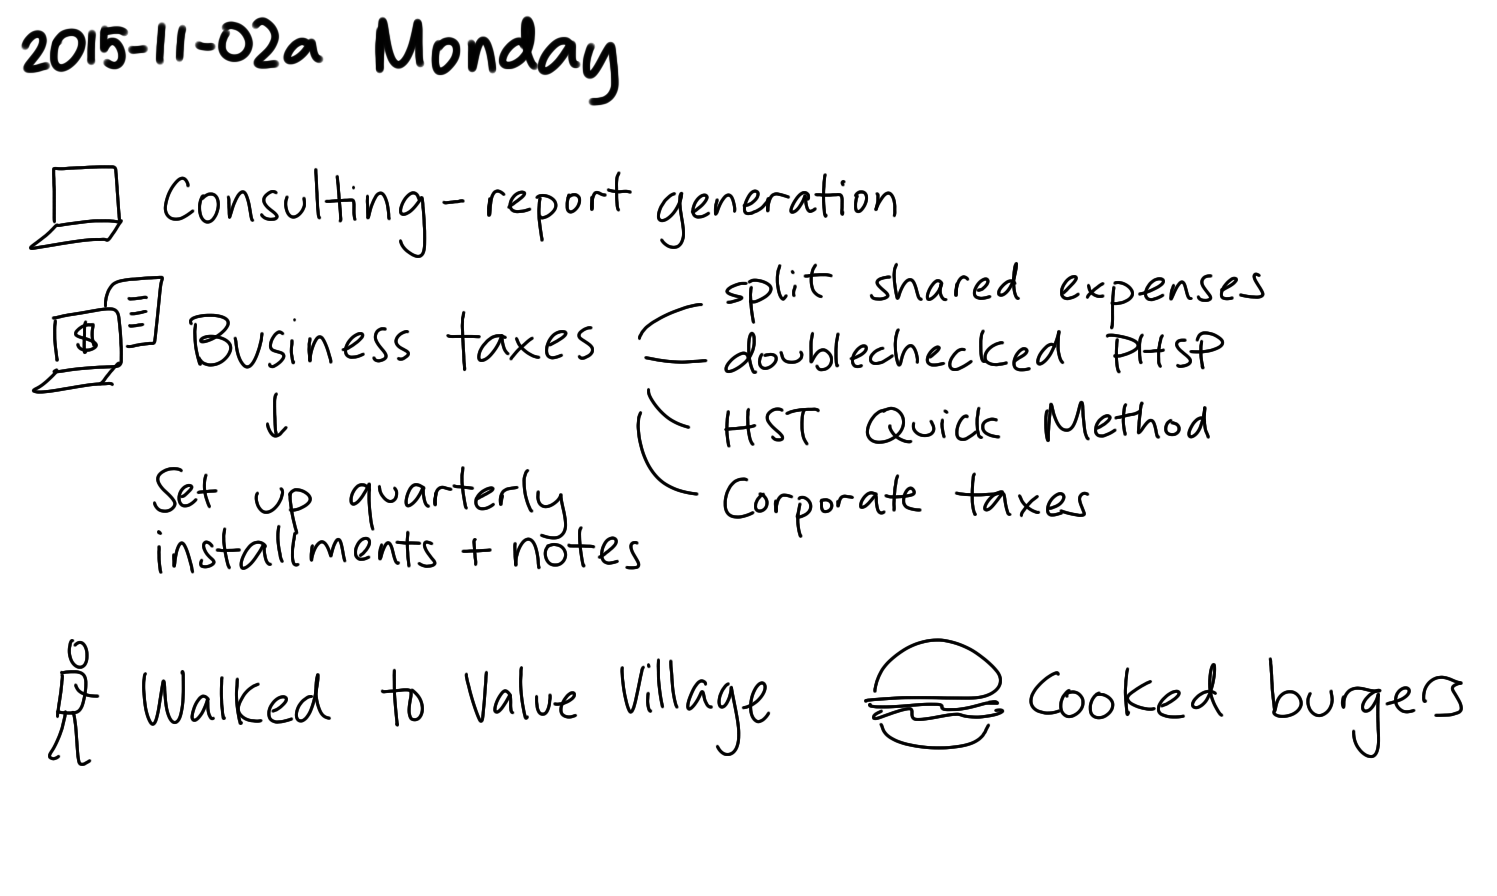 2015-11-02a Monday -- index card #journal.png